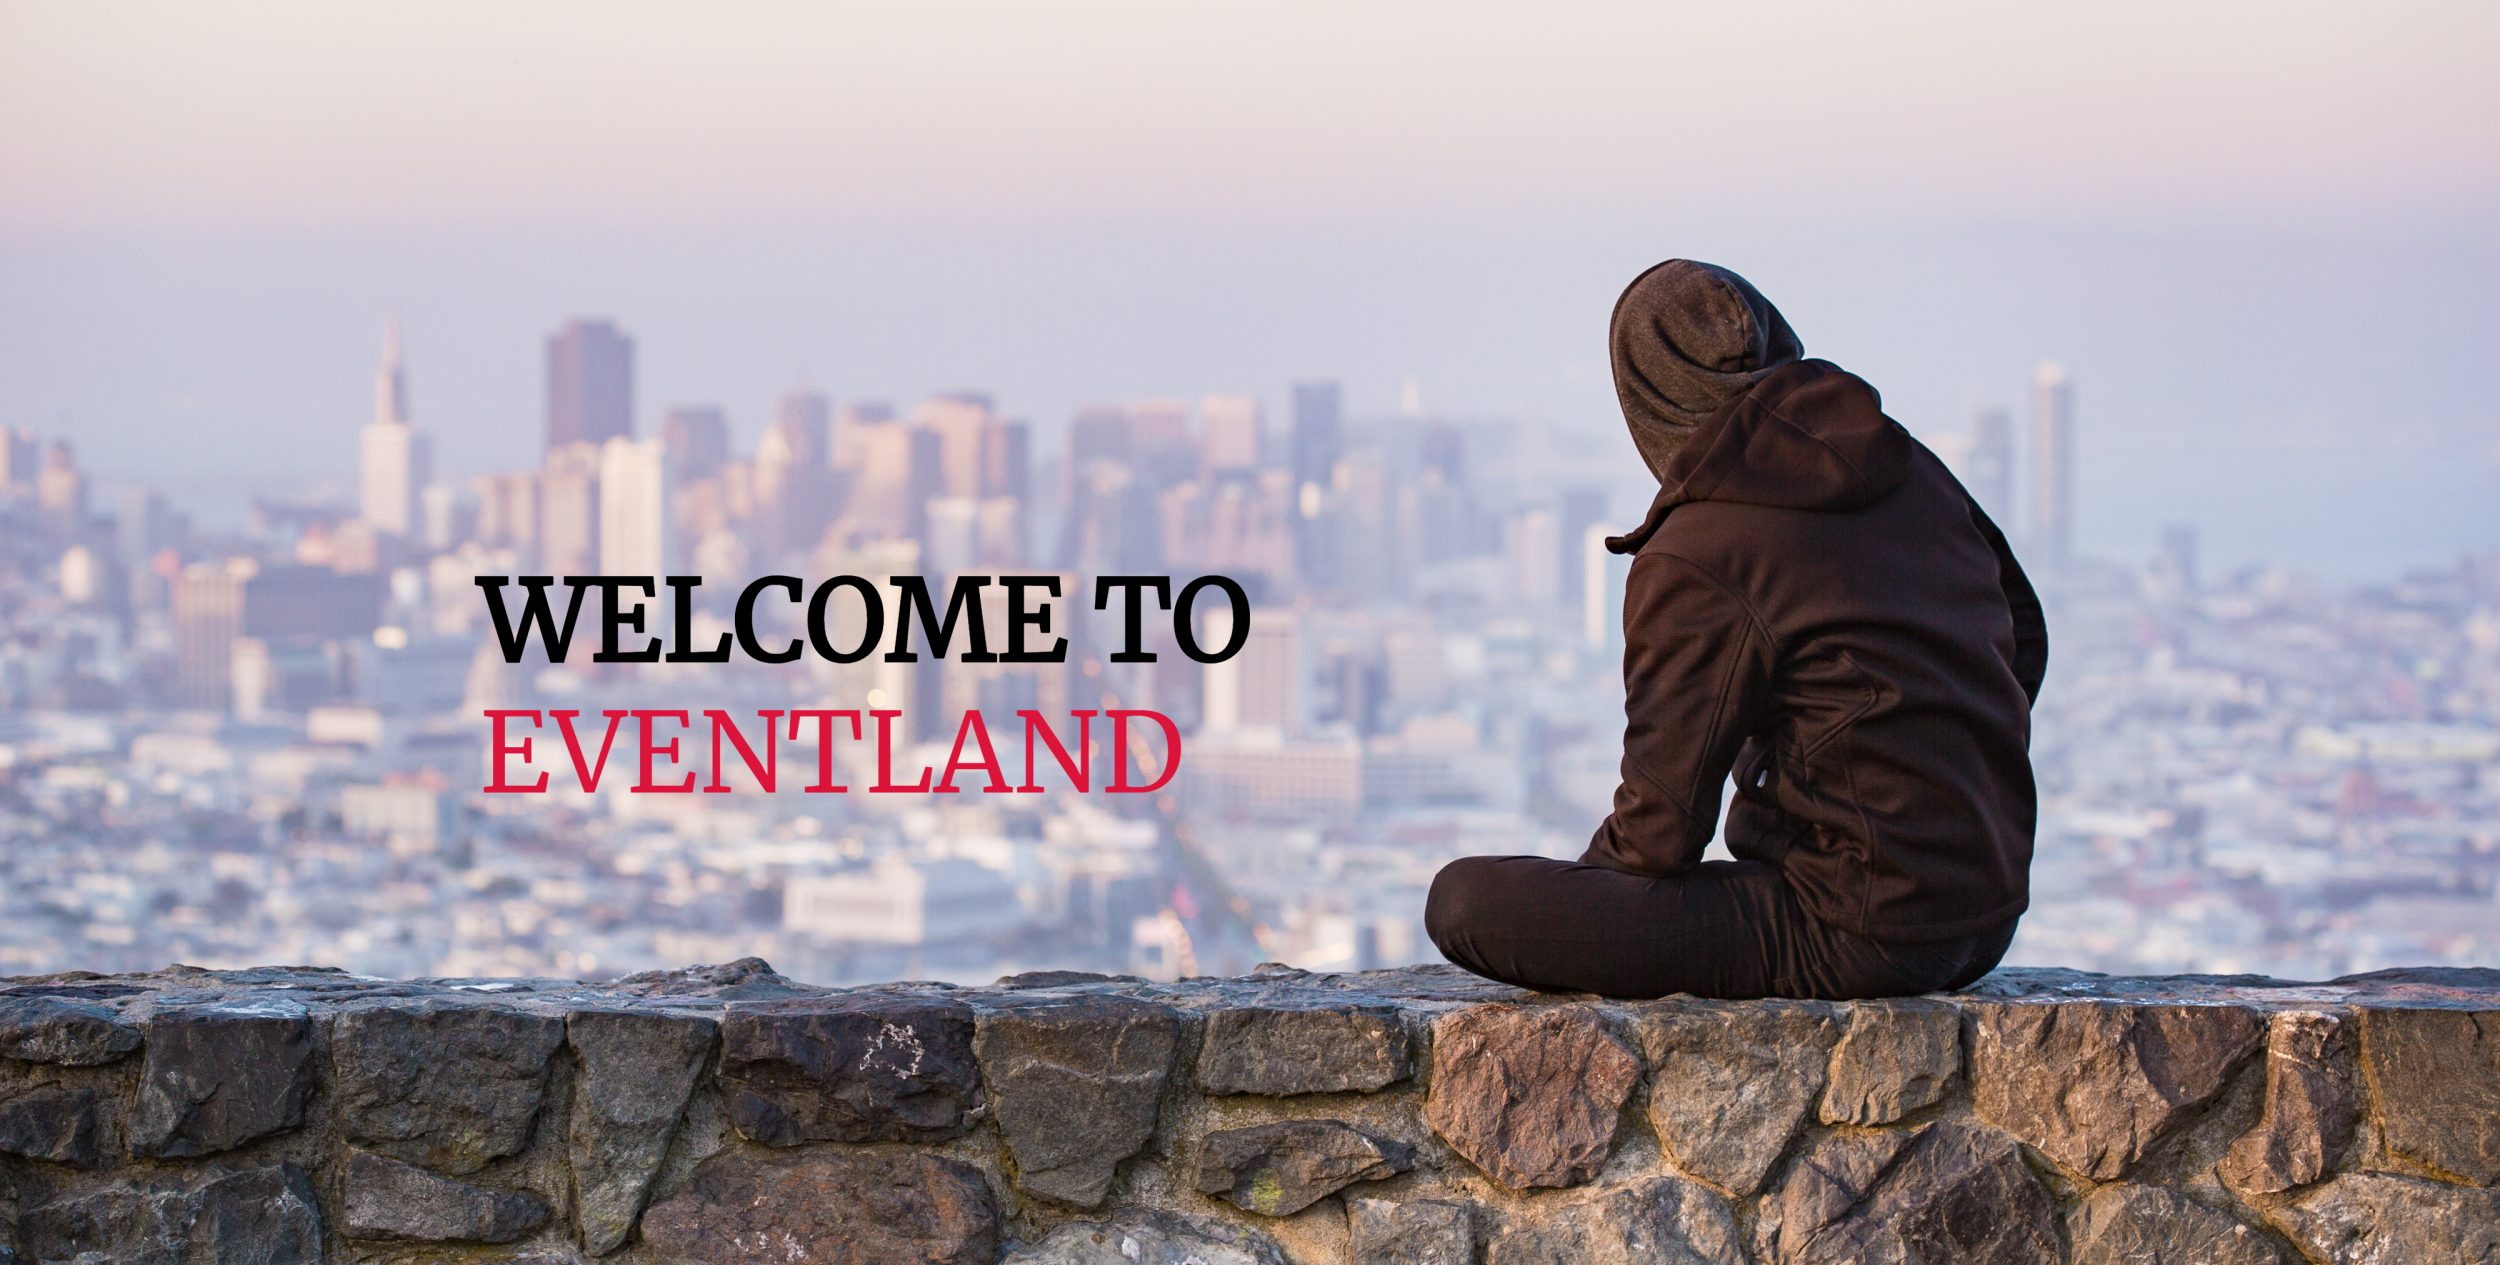 EVENTLAND – cool events and things to do near me